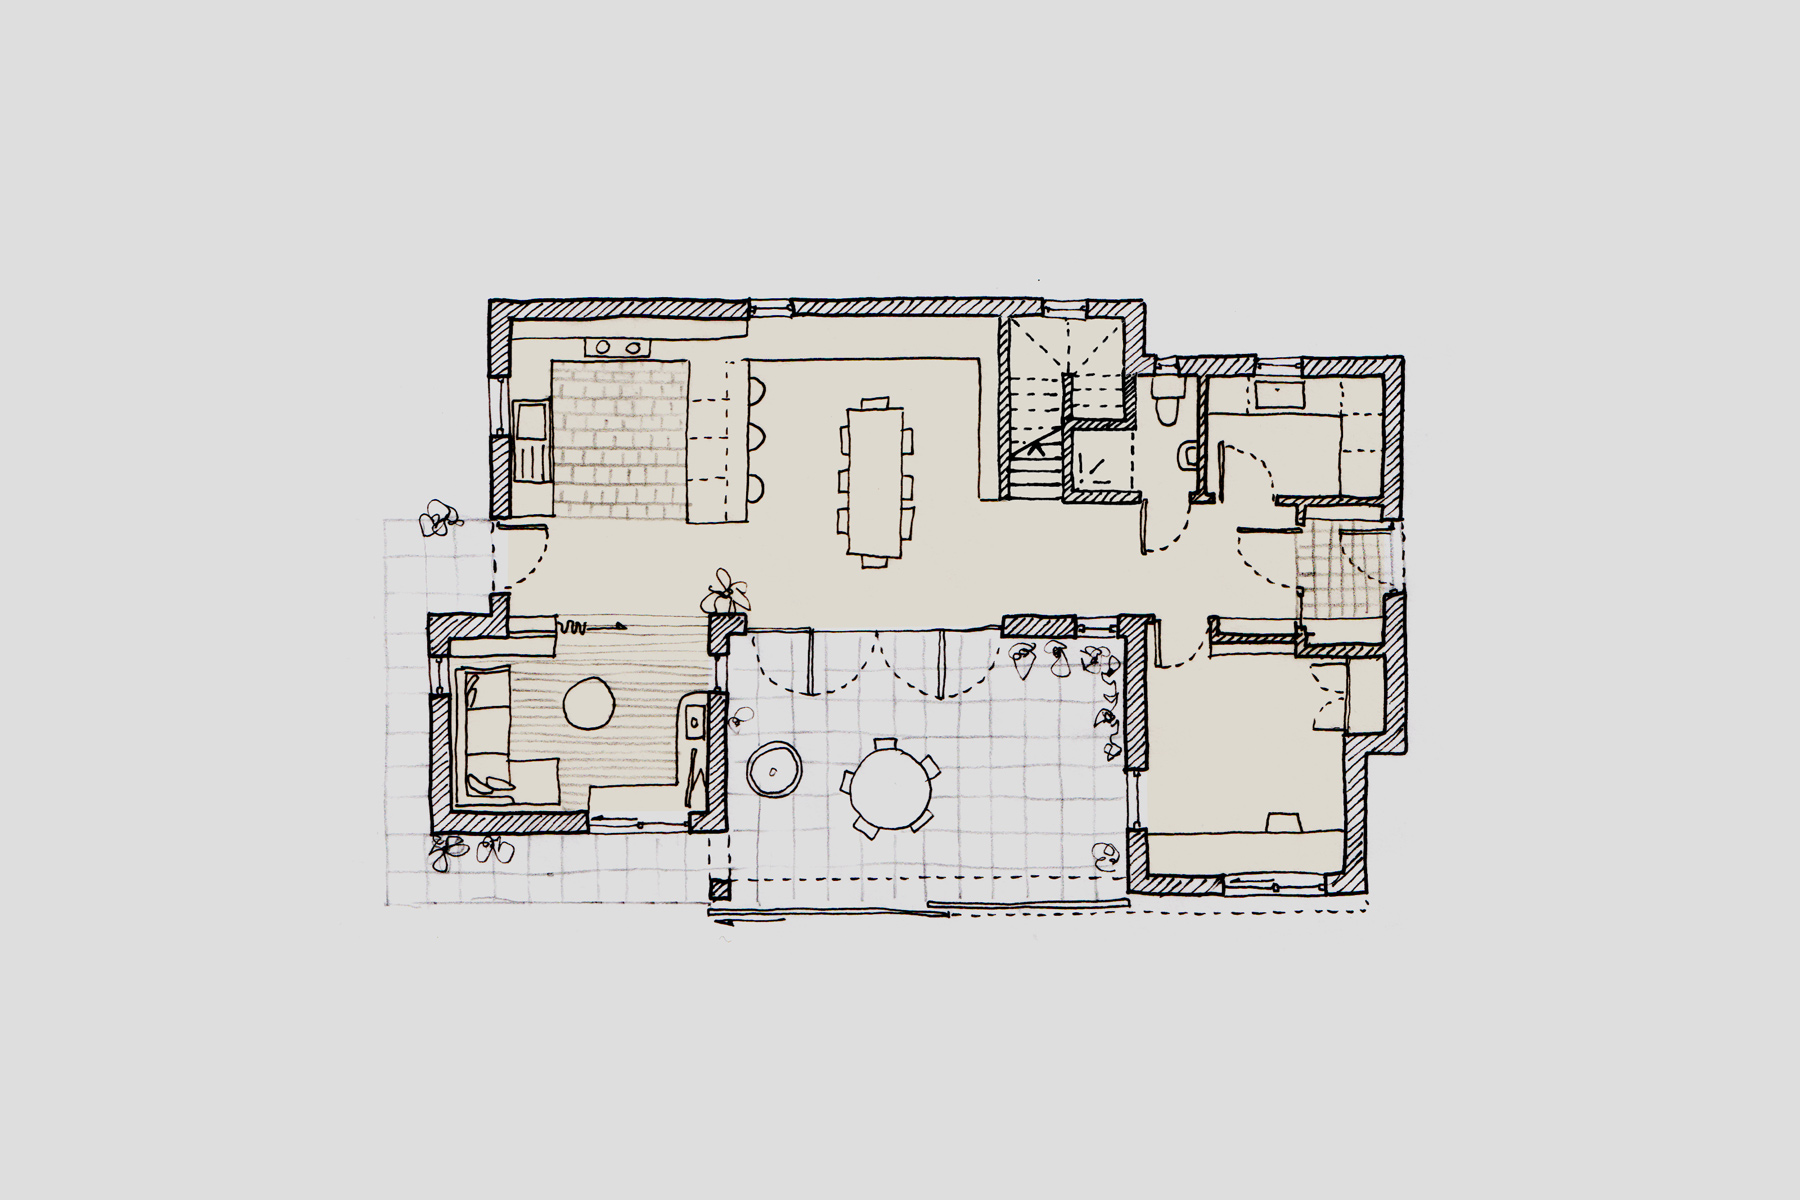 Plans of the Billingford project by Studio Bark